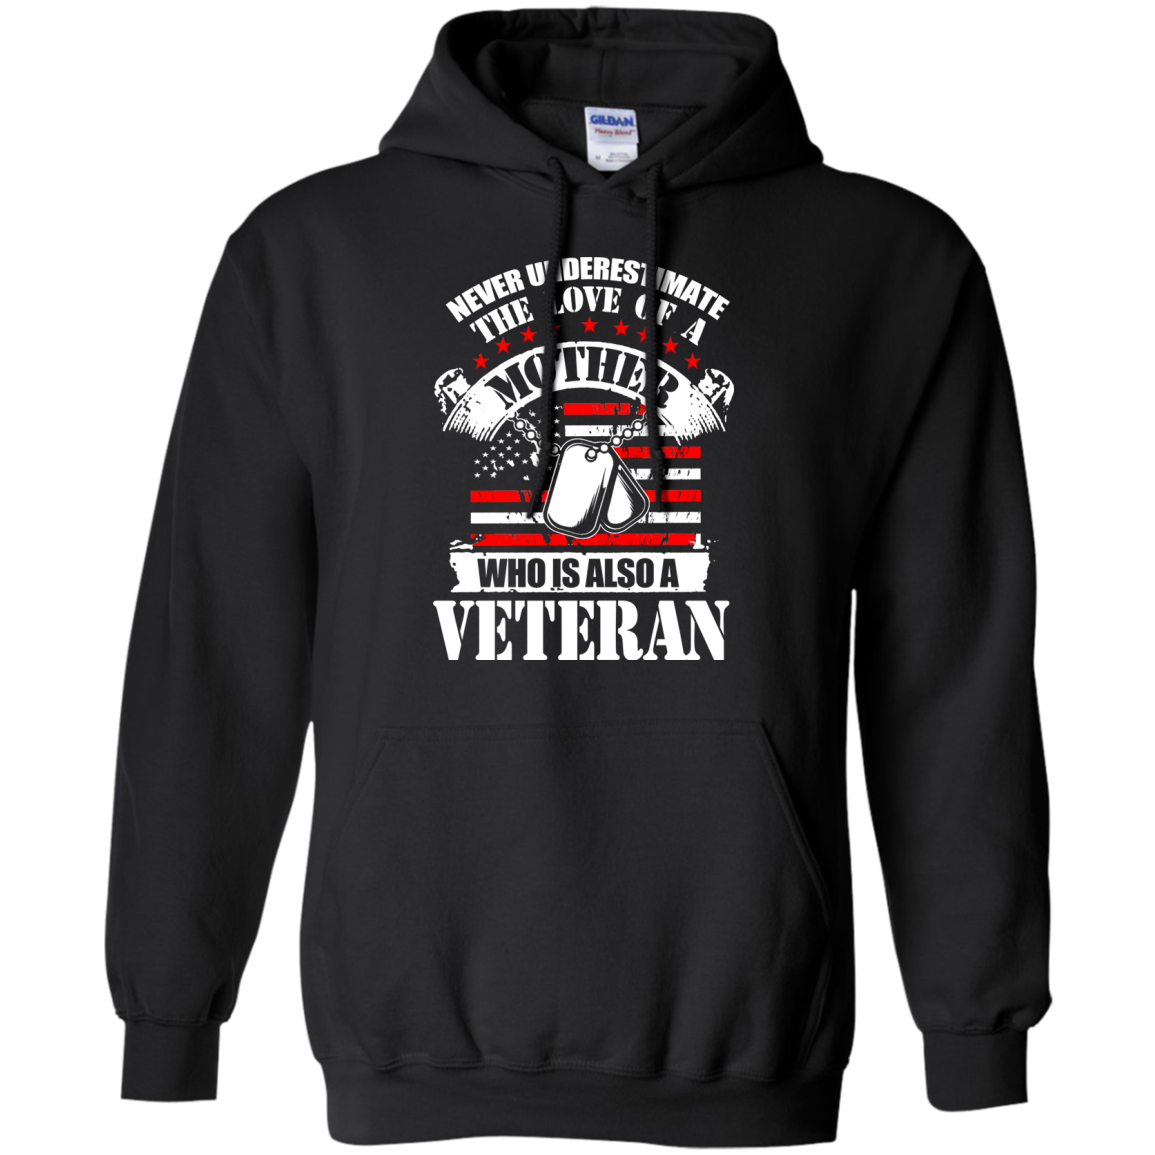 Never Underestimate the Love of a Mother, Who is also a Veteran Hoodie